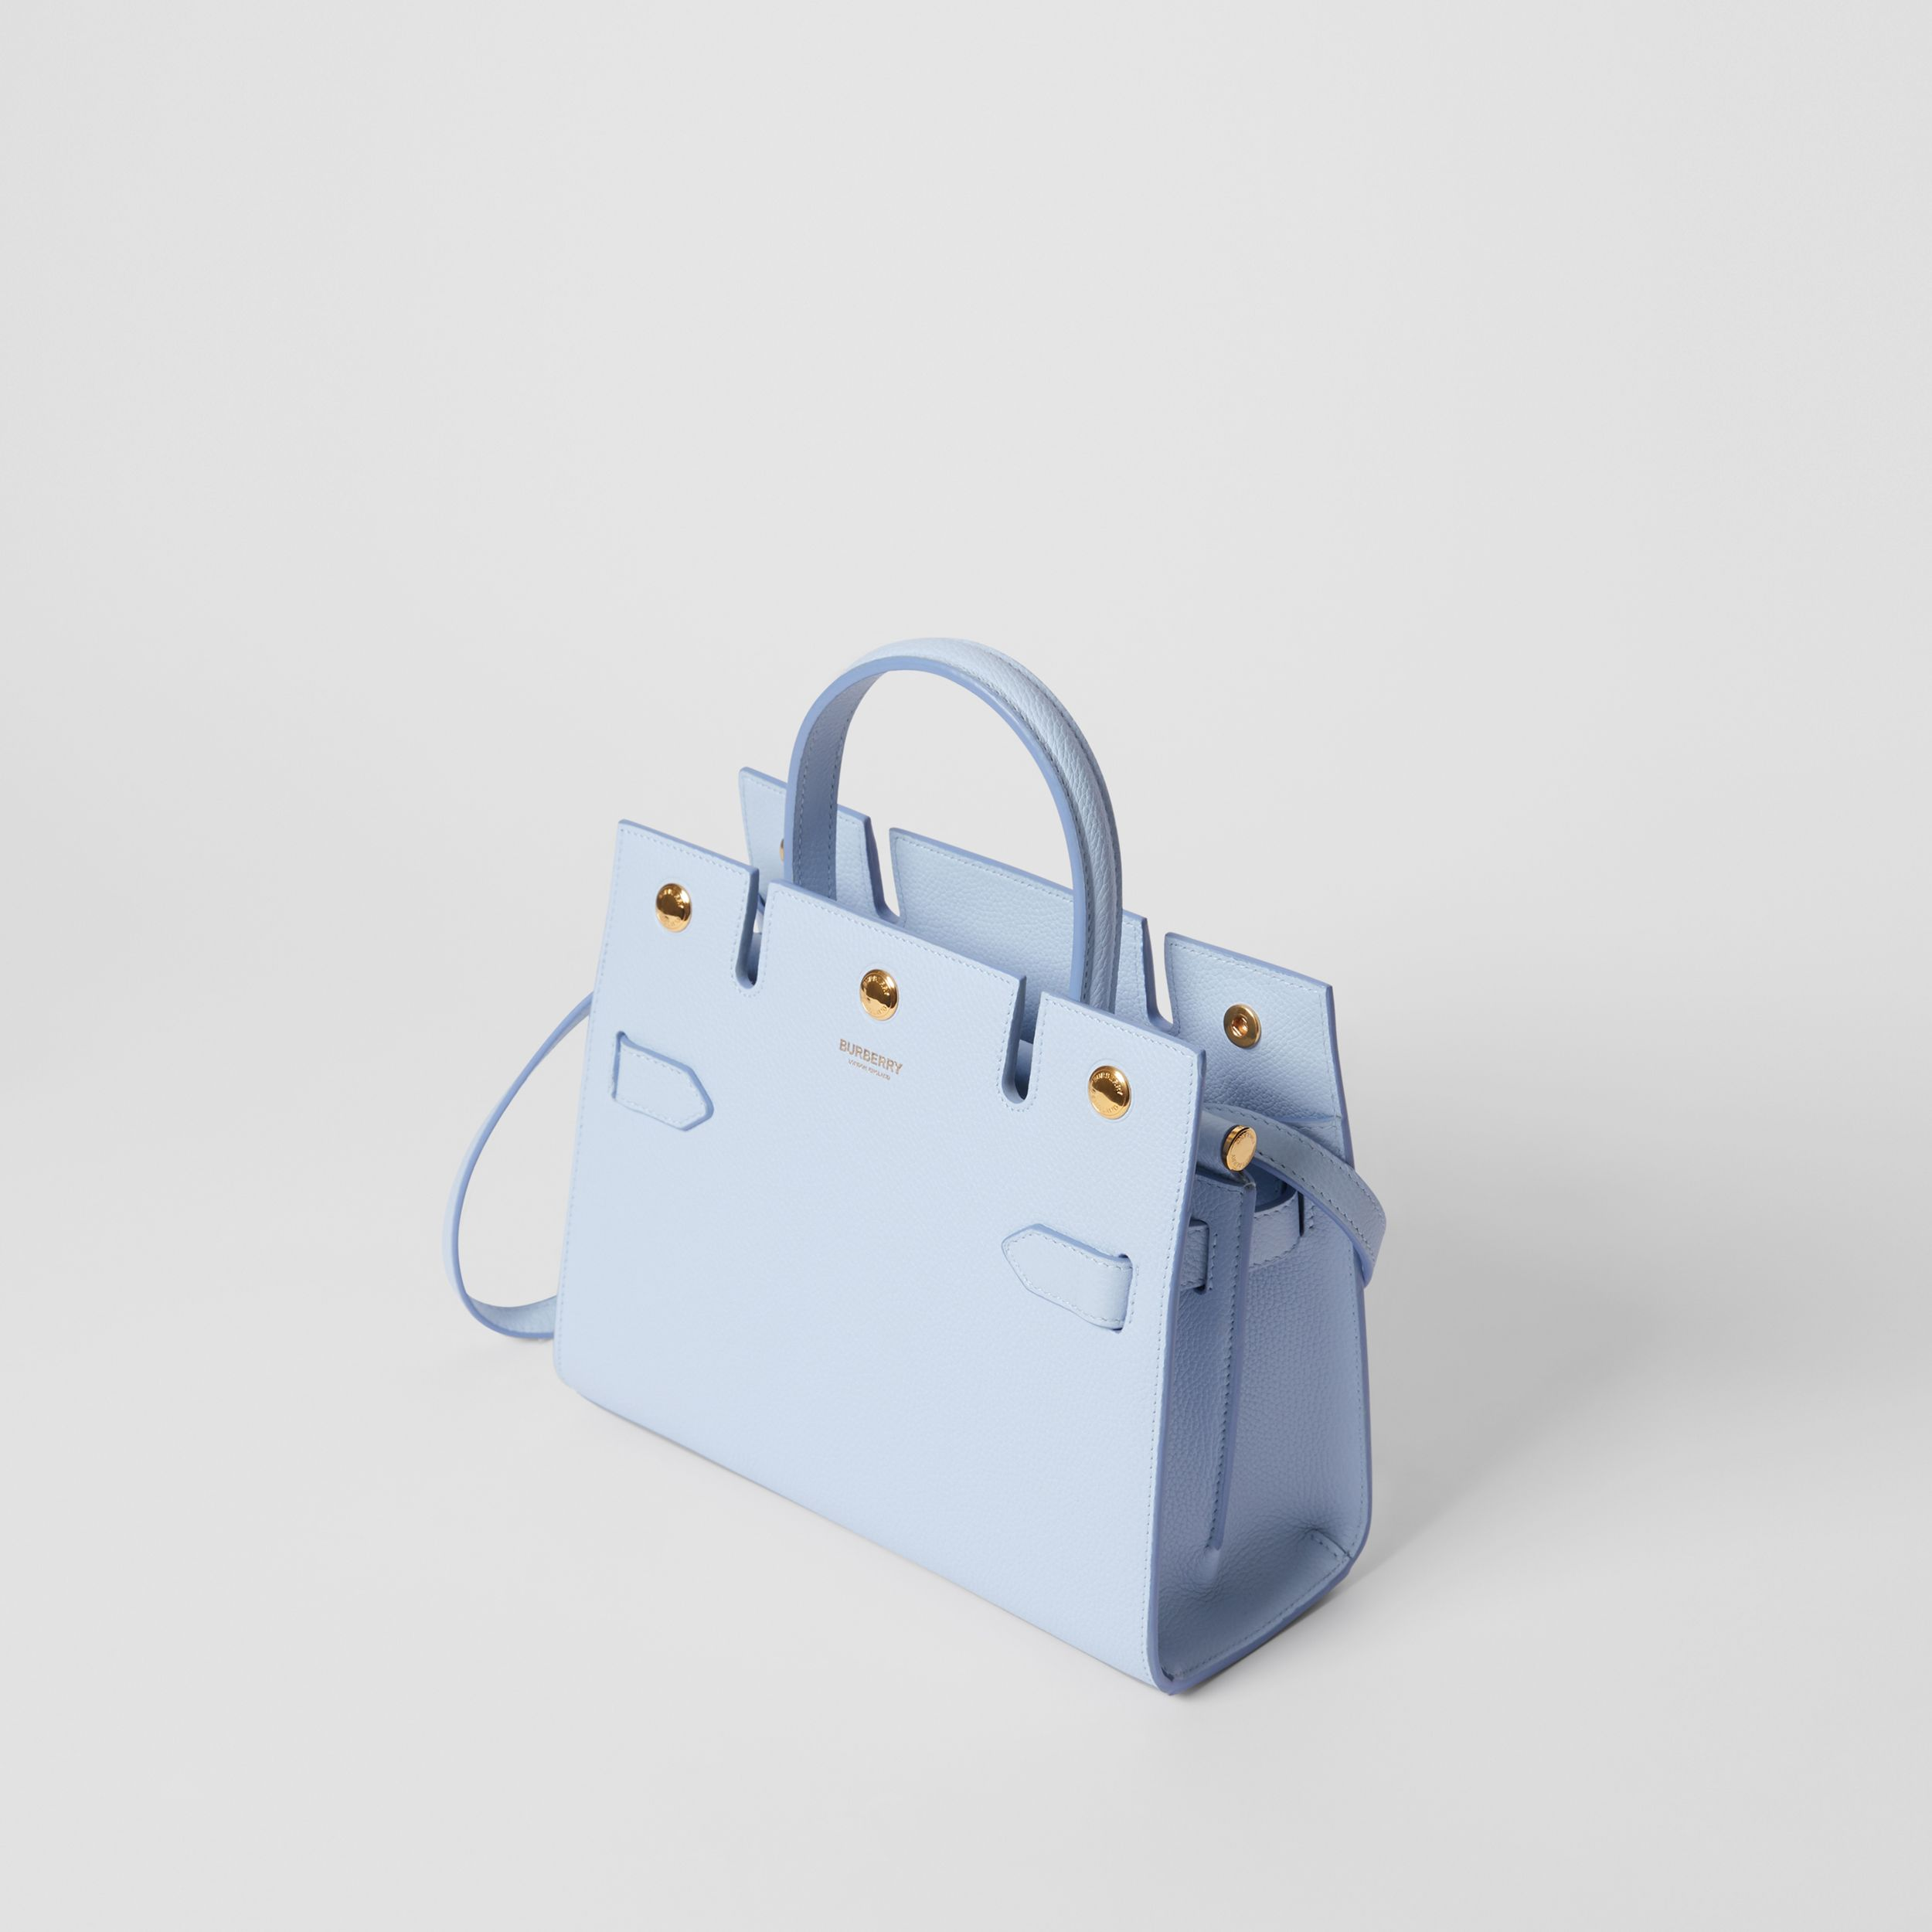 Mini Leather Title Bag in Pale Blue - Women | Burberry - 4